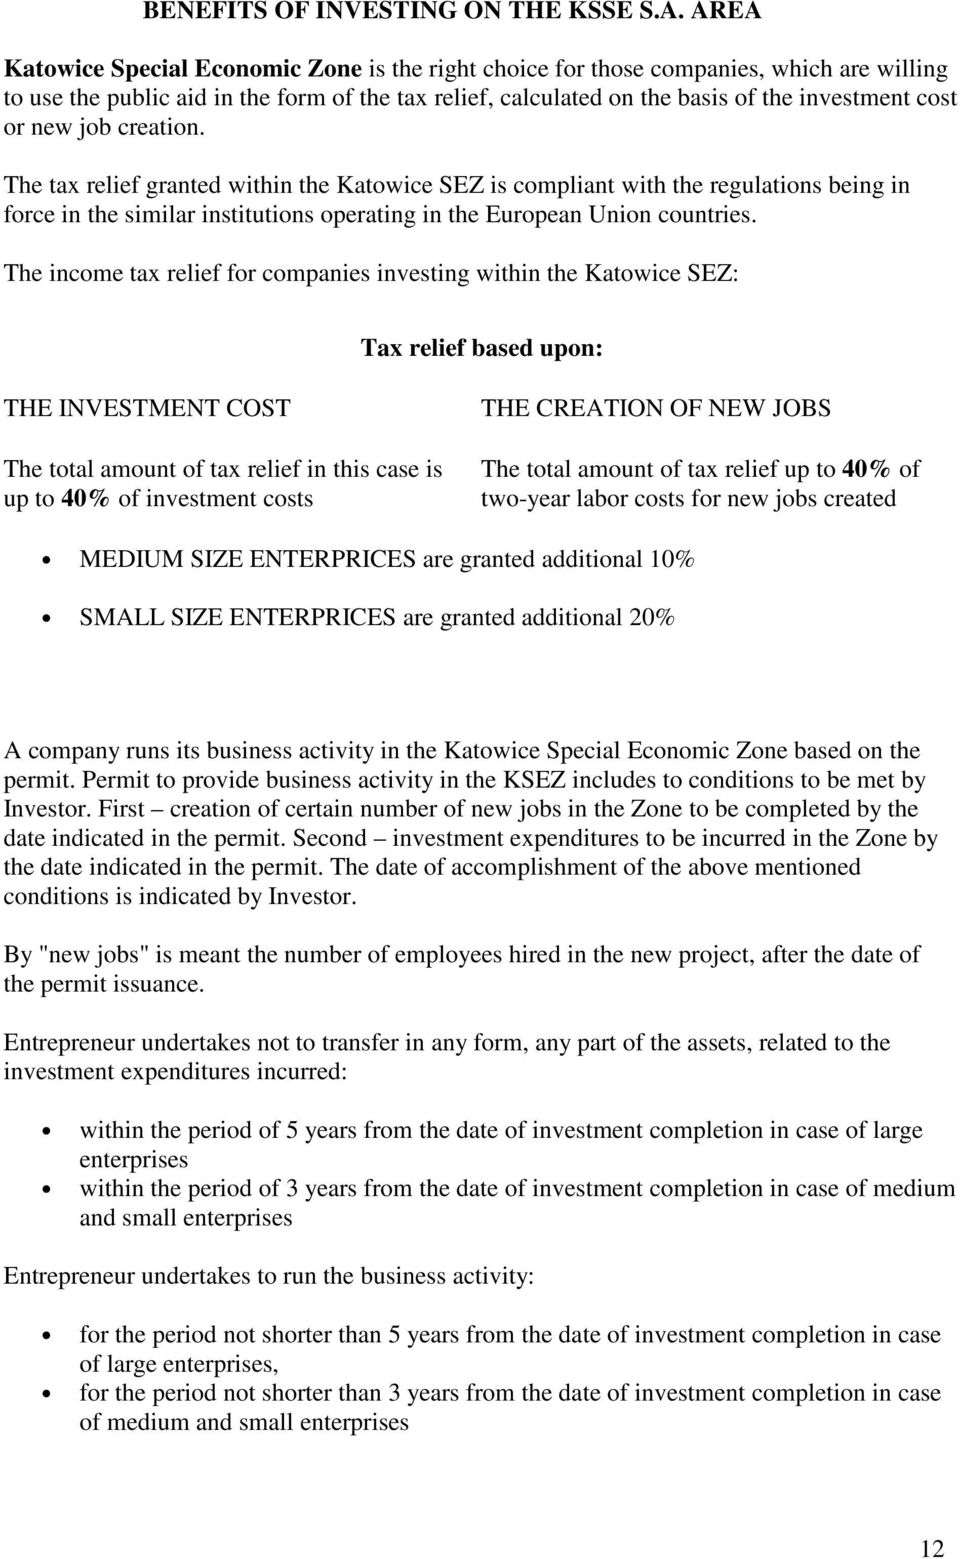 new job creation. The tax relief granted within the Katowice SEZ is compliant with the regulations being in force in the similar institutions operating in the European Union countries.